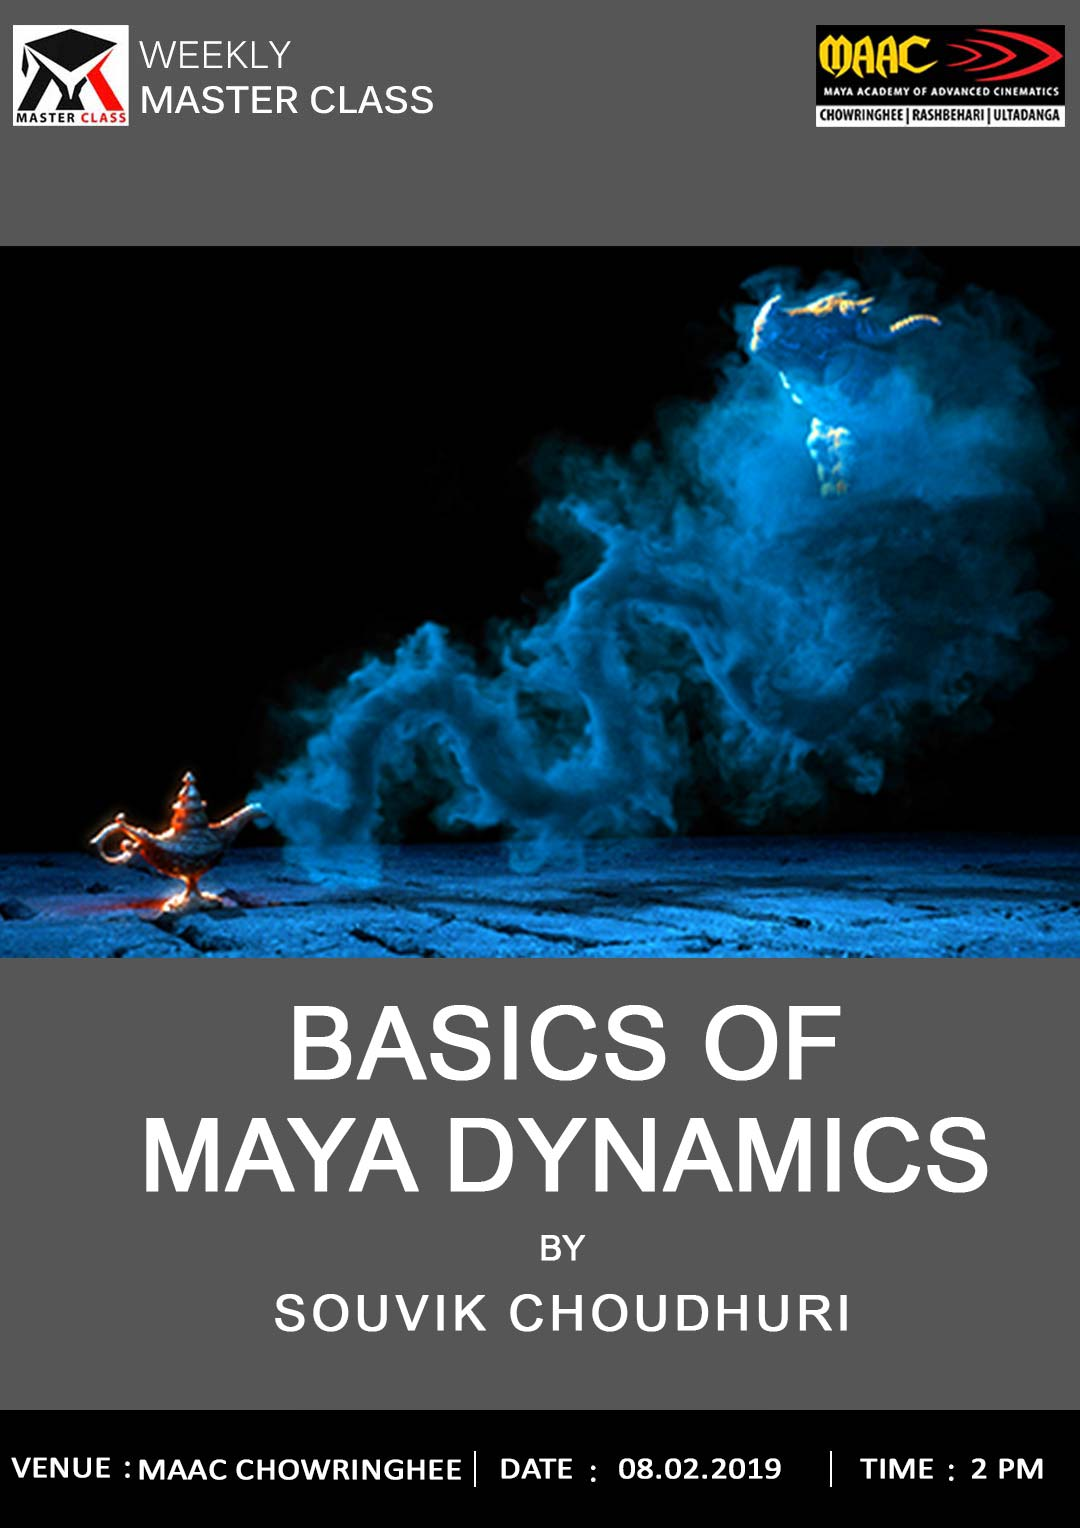 Weekly Master Class on Basics Of Maya Dynamics